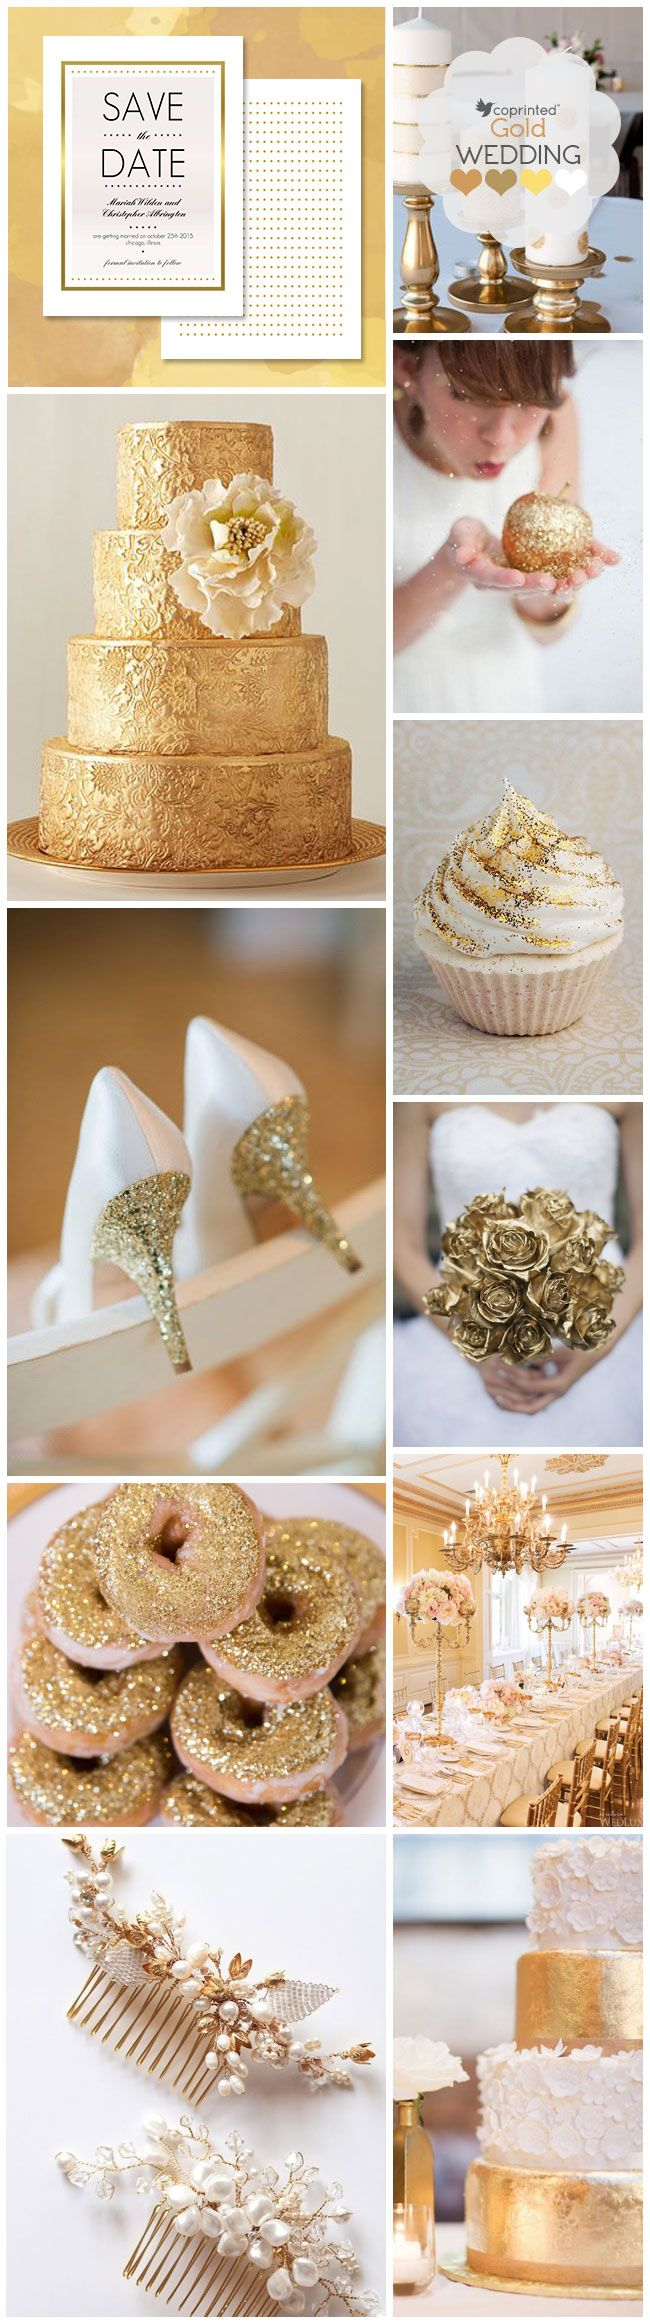 Golden-Save-The-Date-Card-Template